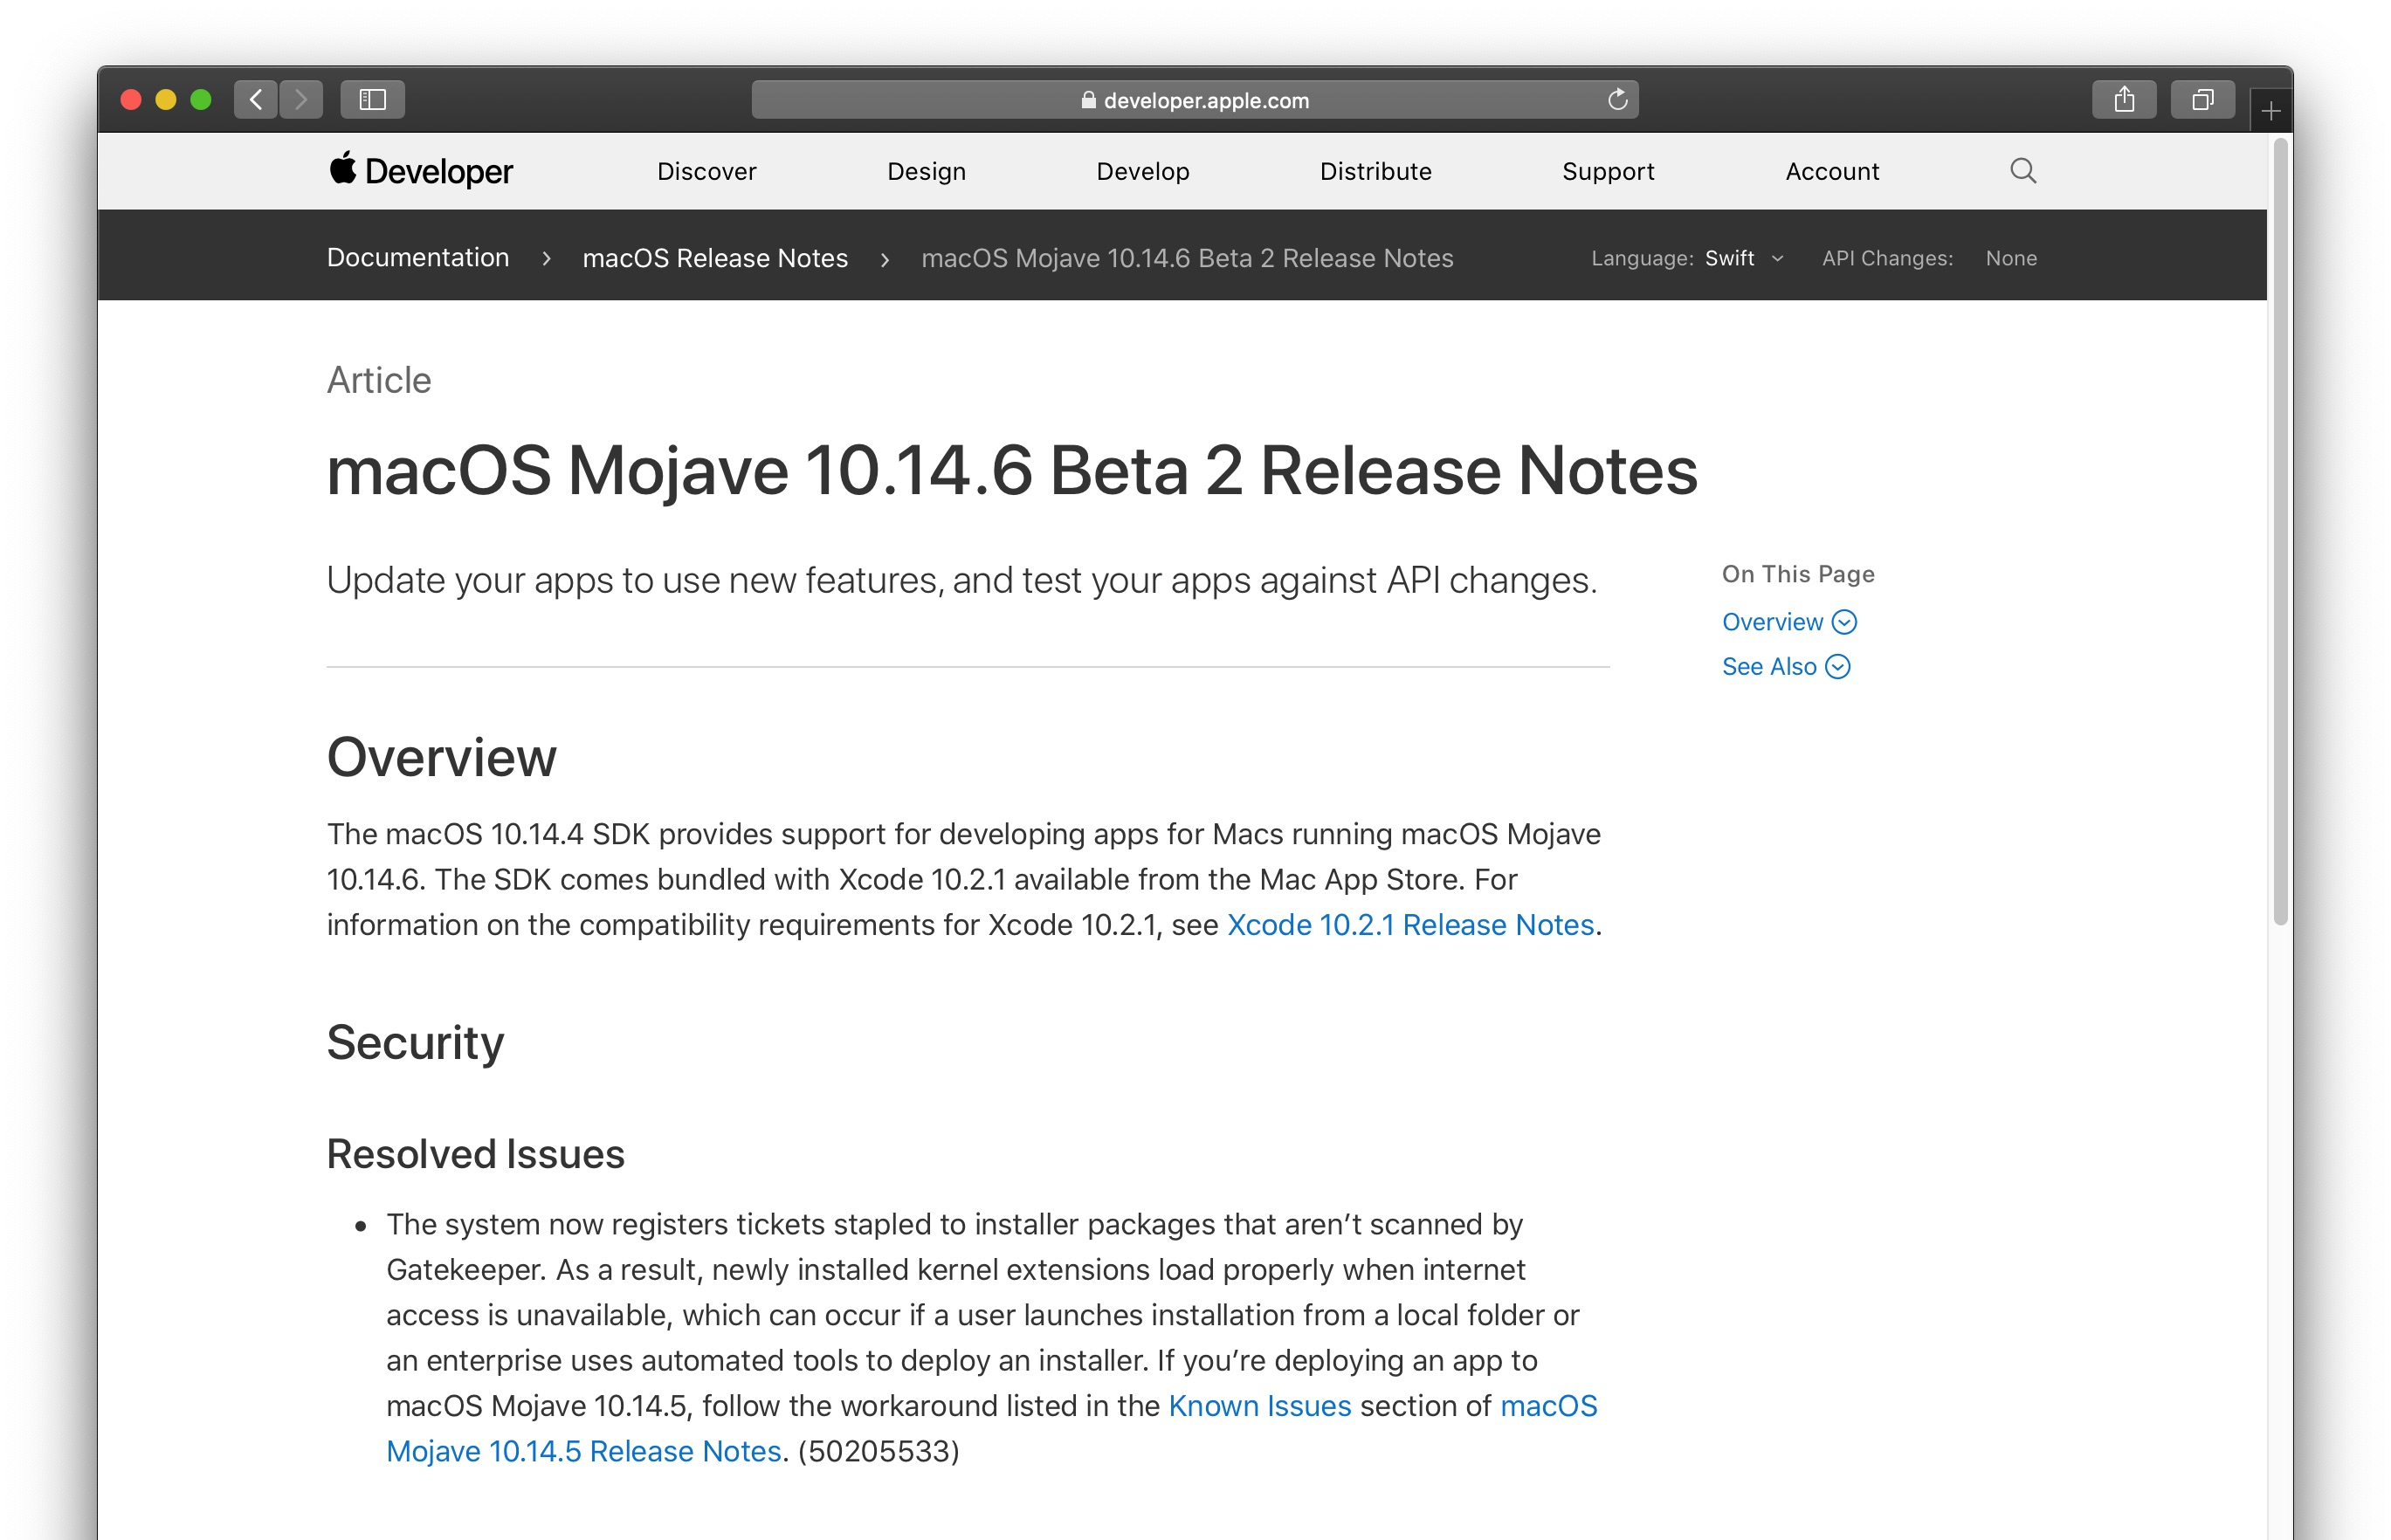 macOS Mojave 10.14.6 Beta 2 Release Notes